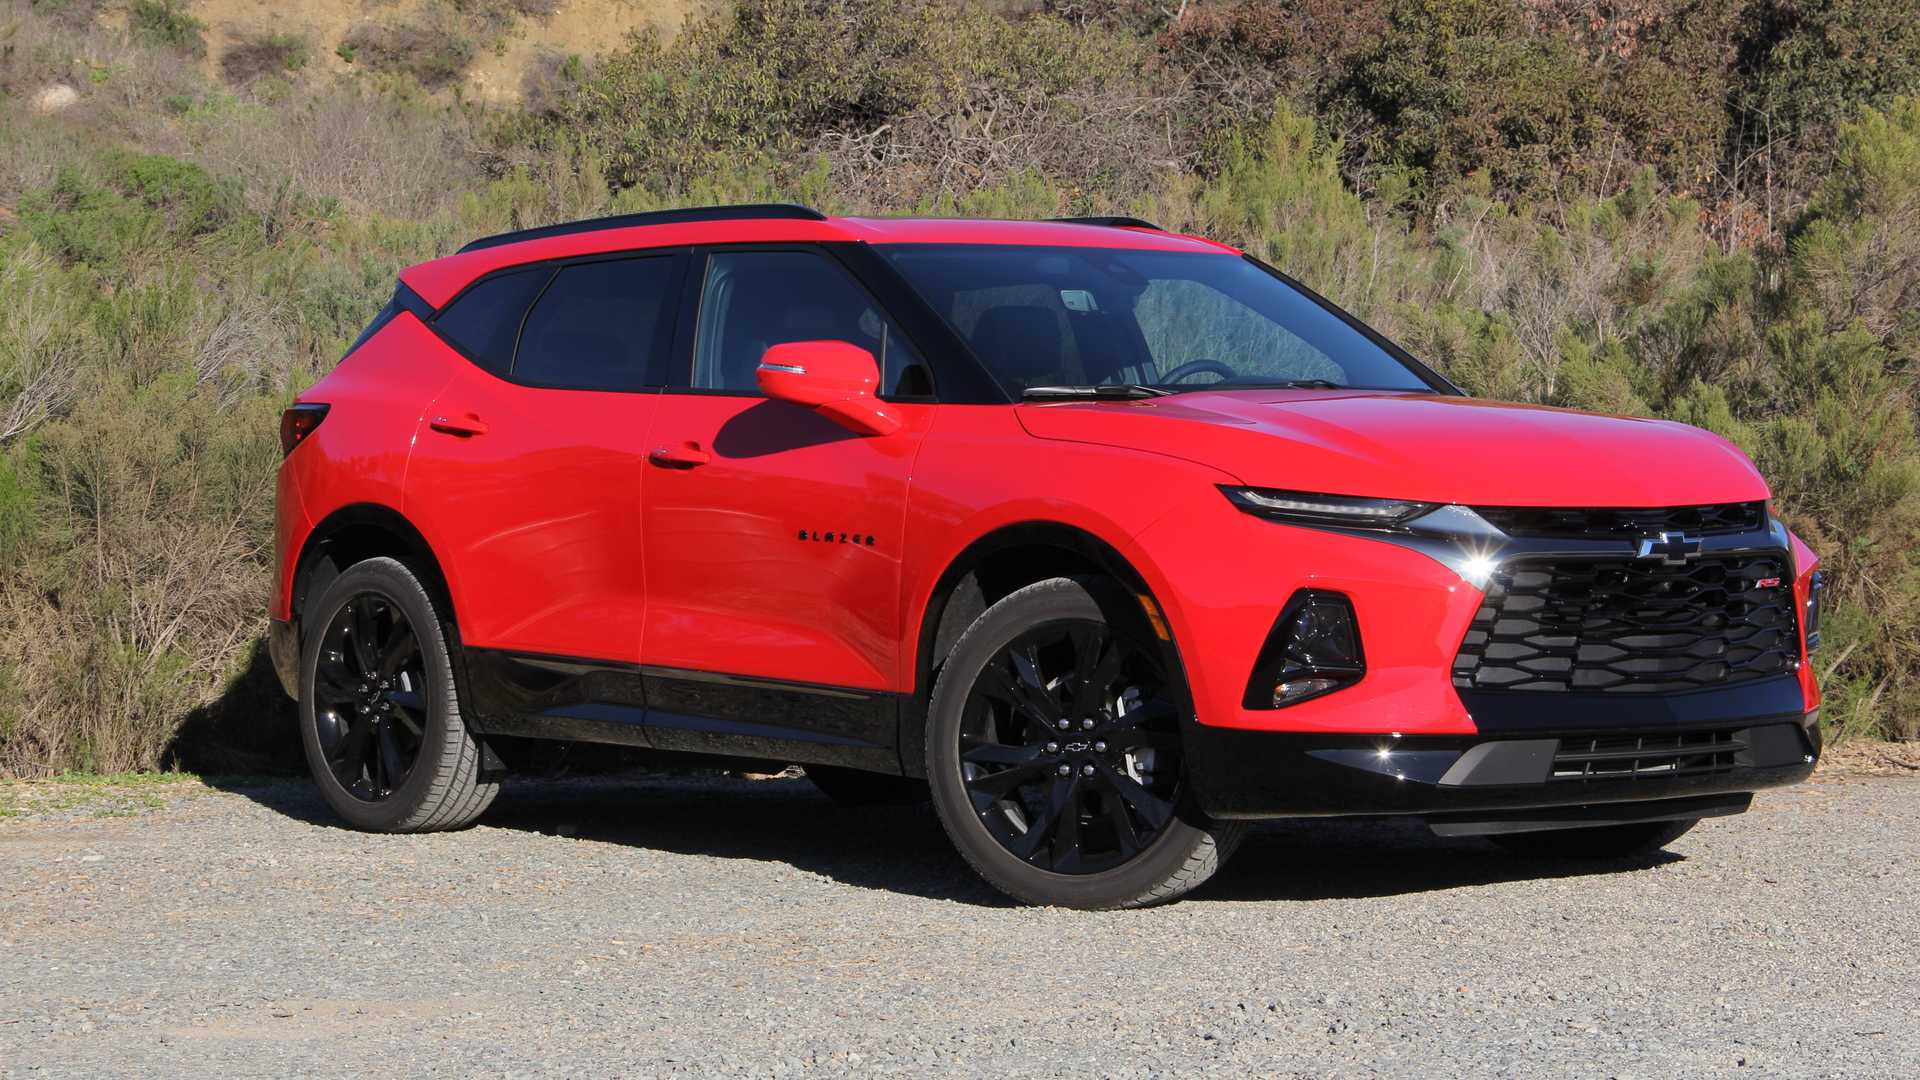 33 Best Chevrolet Blazer Xl 2020 Wallpaper